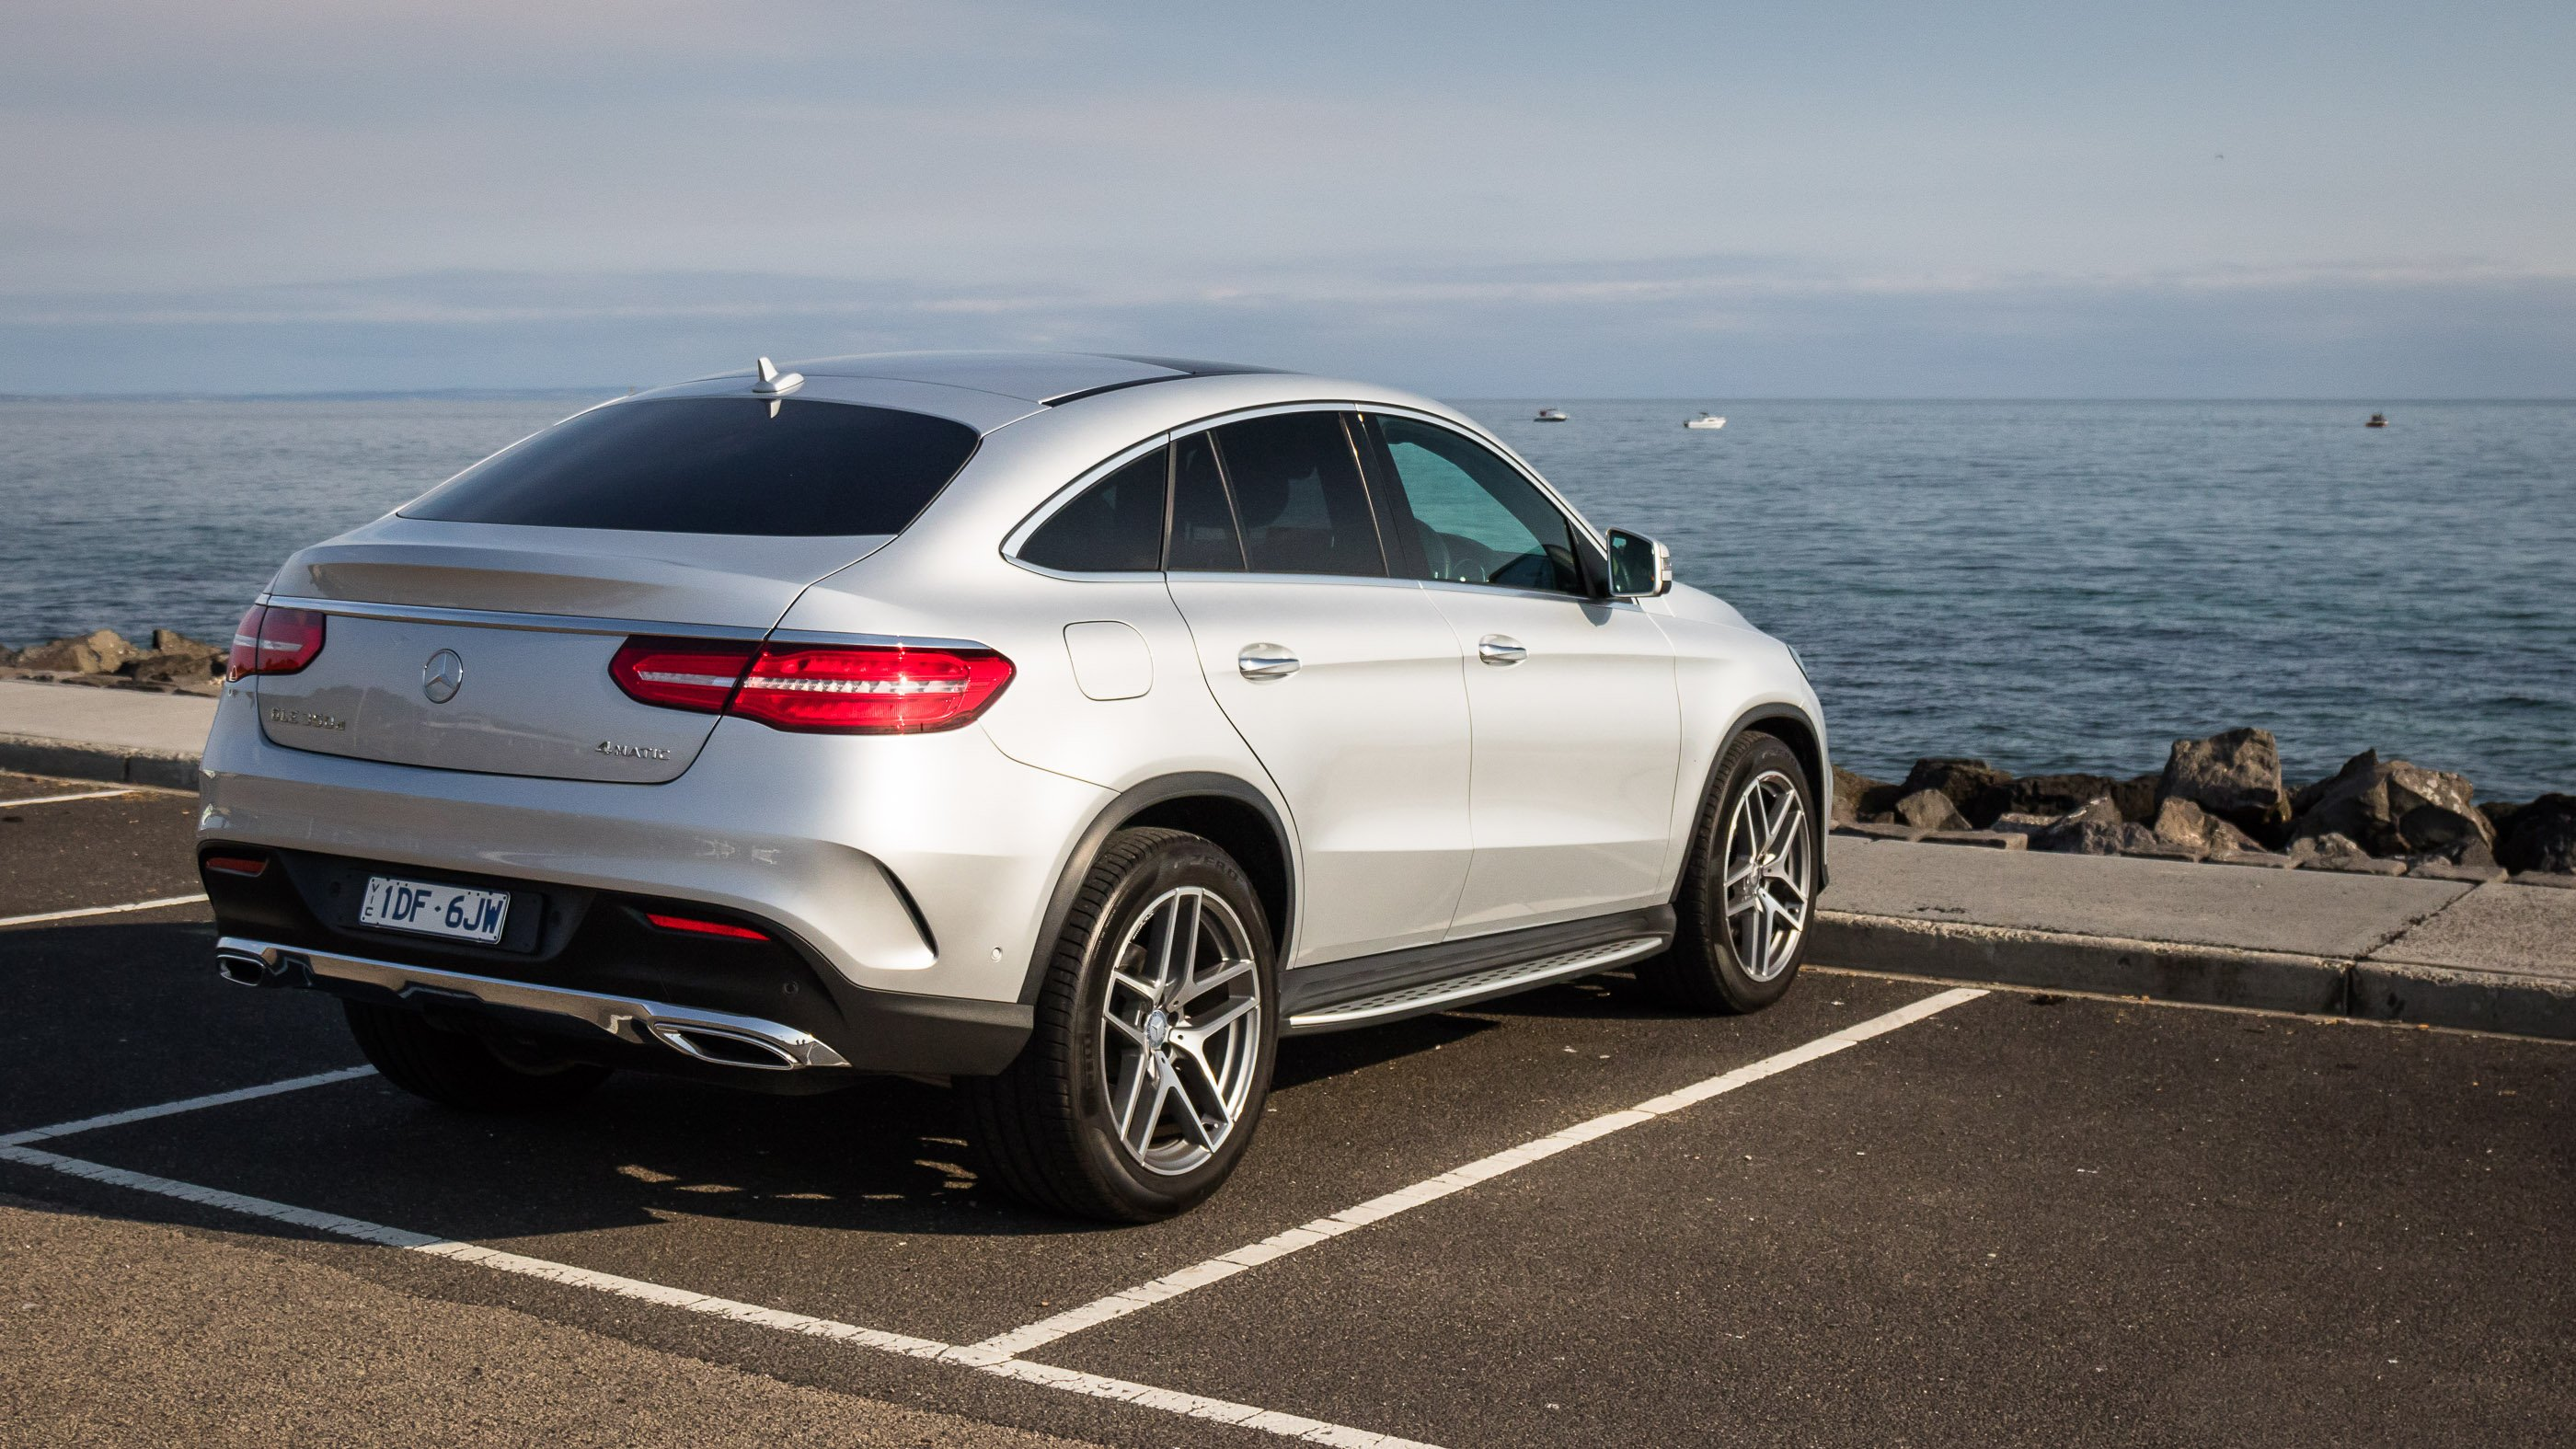 2016 Mercedes-Benz GLE 350d Coupe Review - photos | CarAdvice